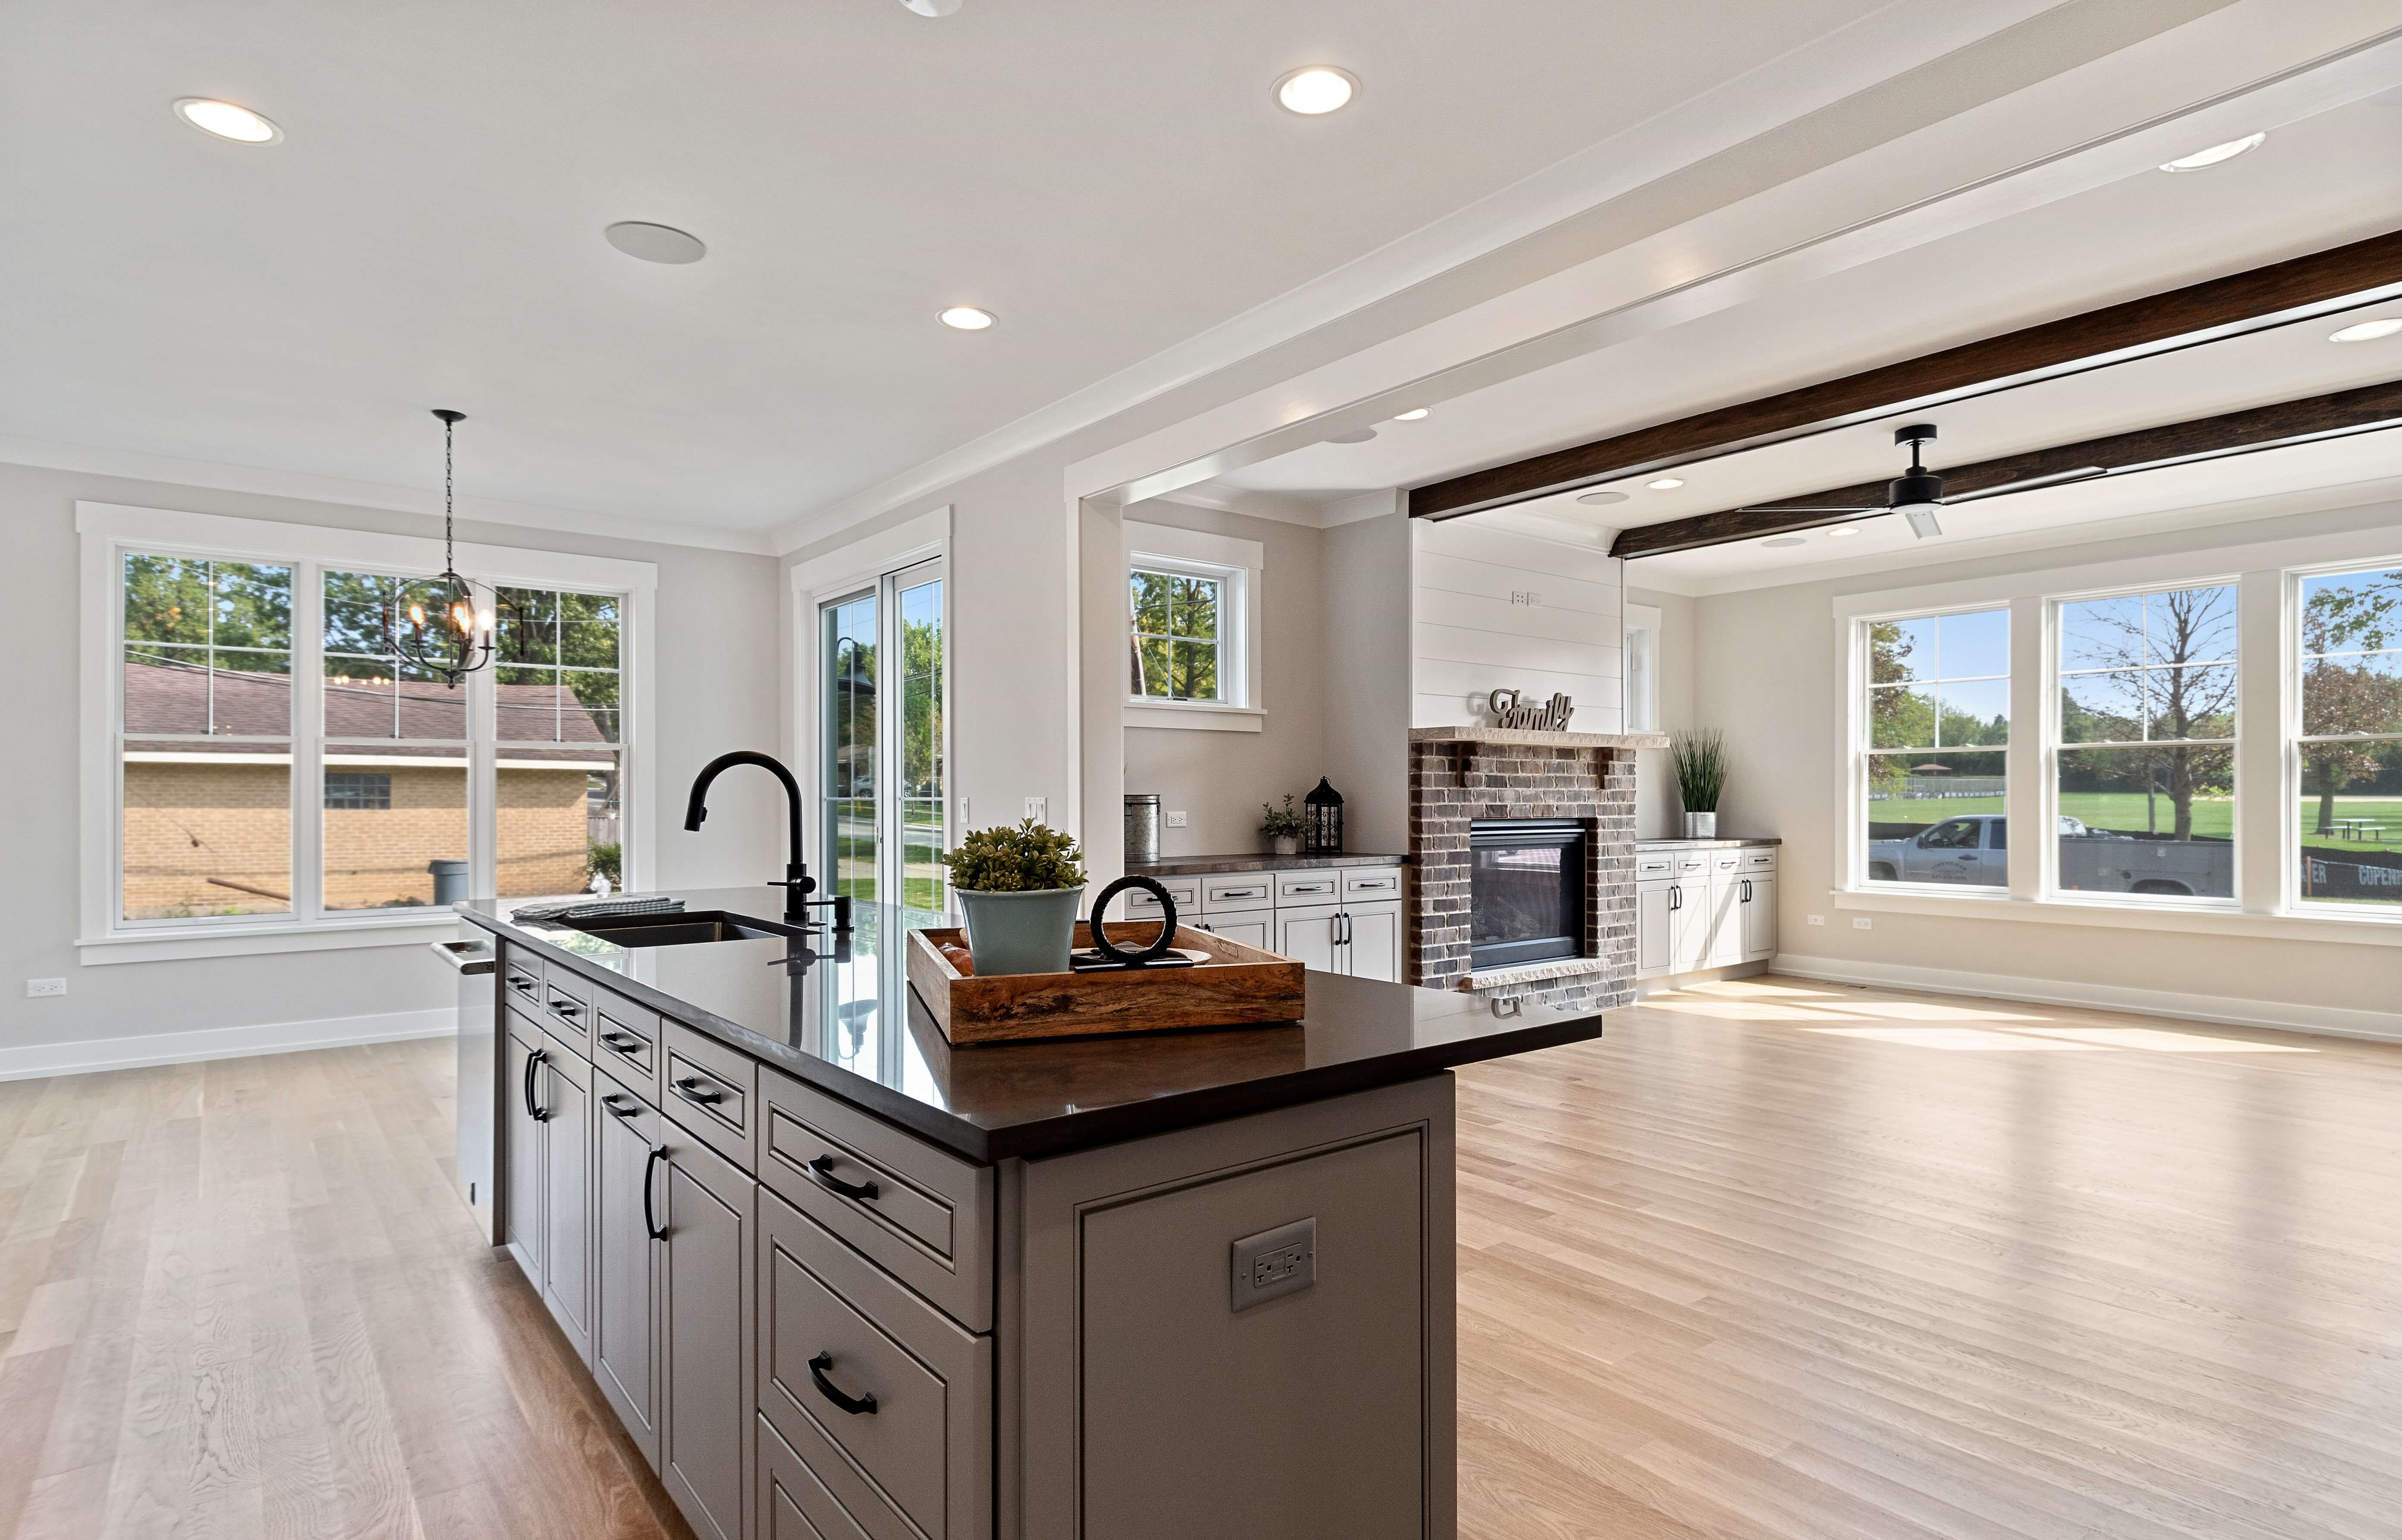 Open floor plan kitchen showing off kitchen and living room